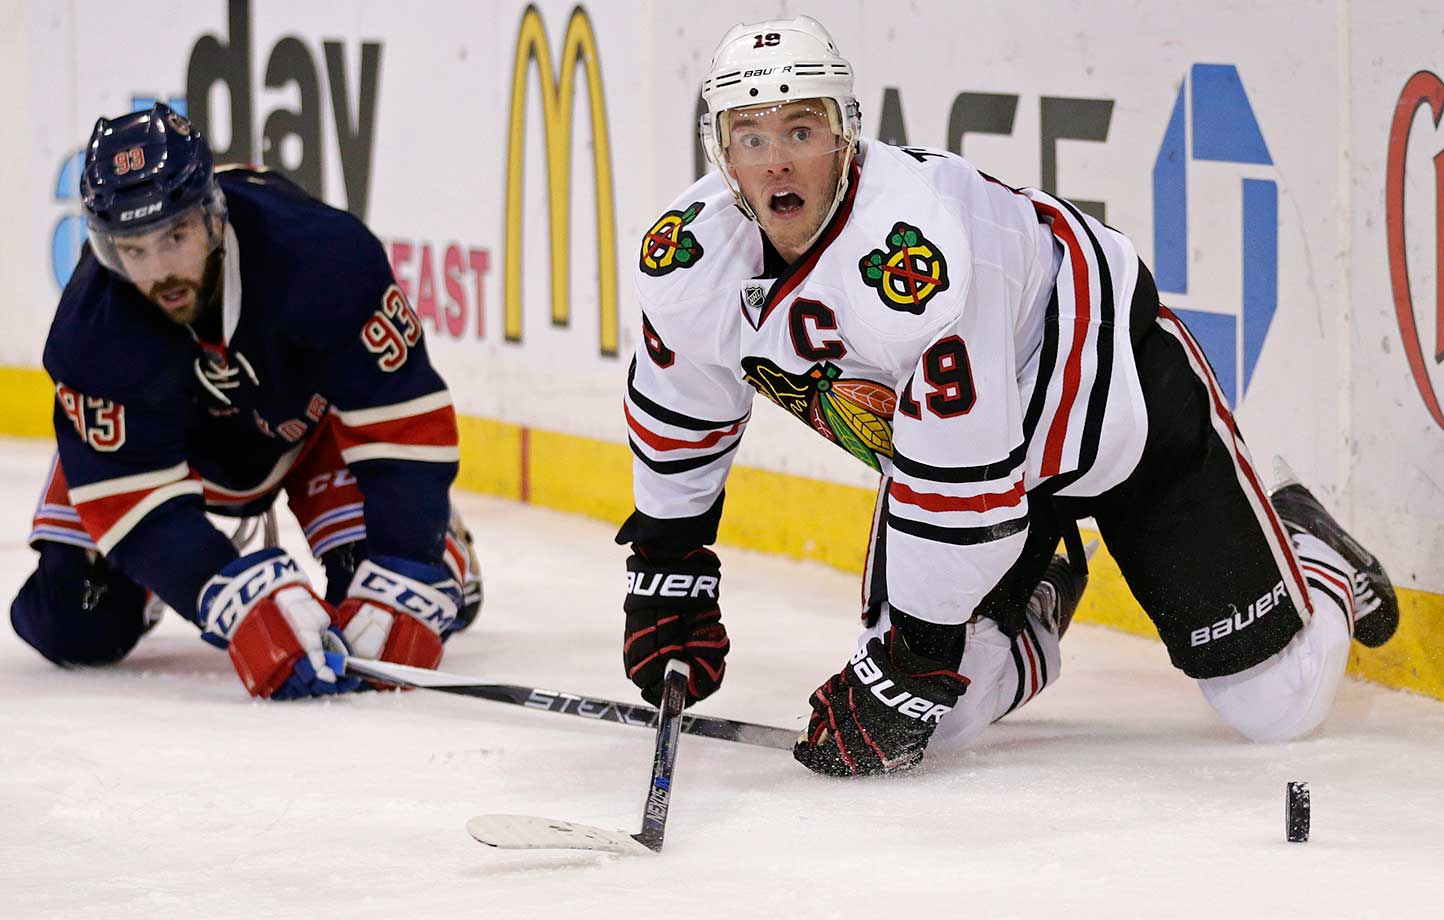 Chicago center Jonathan Toews (19) falls to the ice battling for the puck with New York defenseman Keith Yandle.